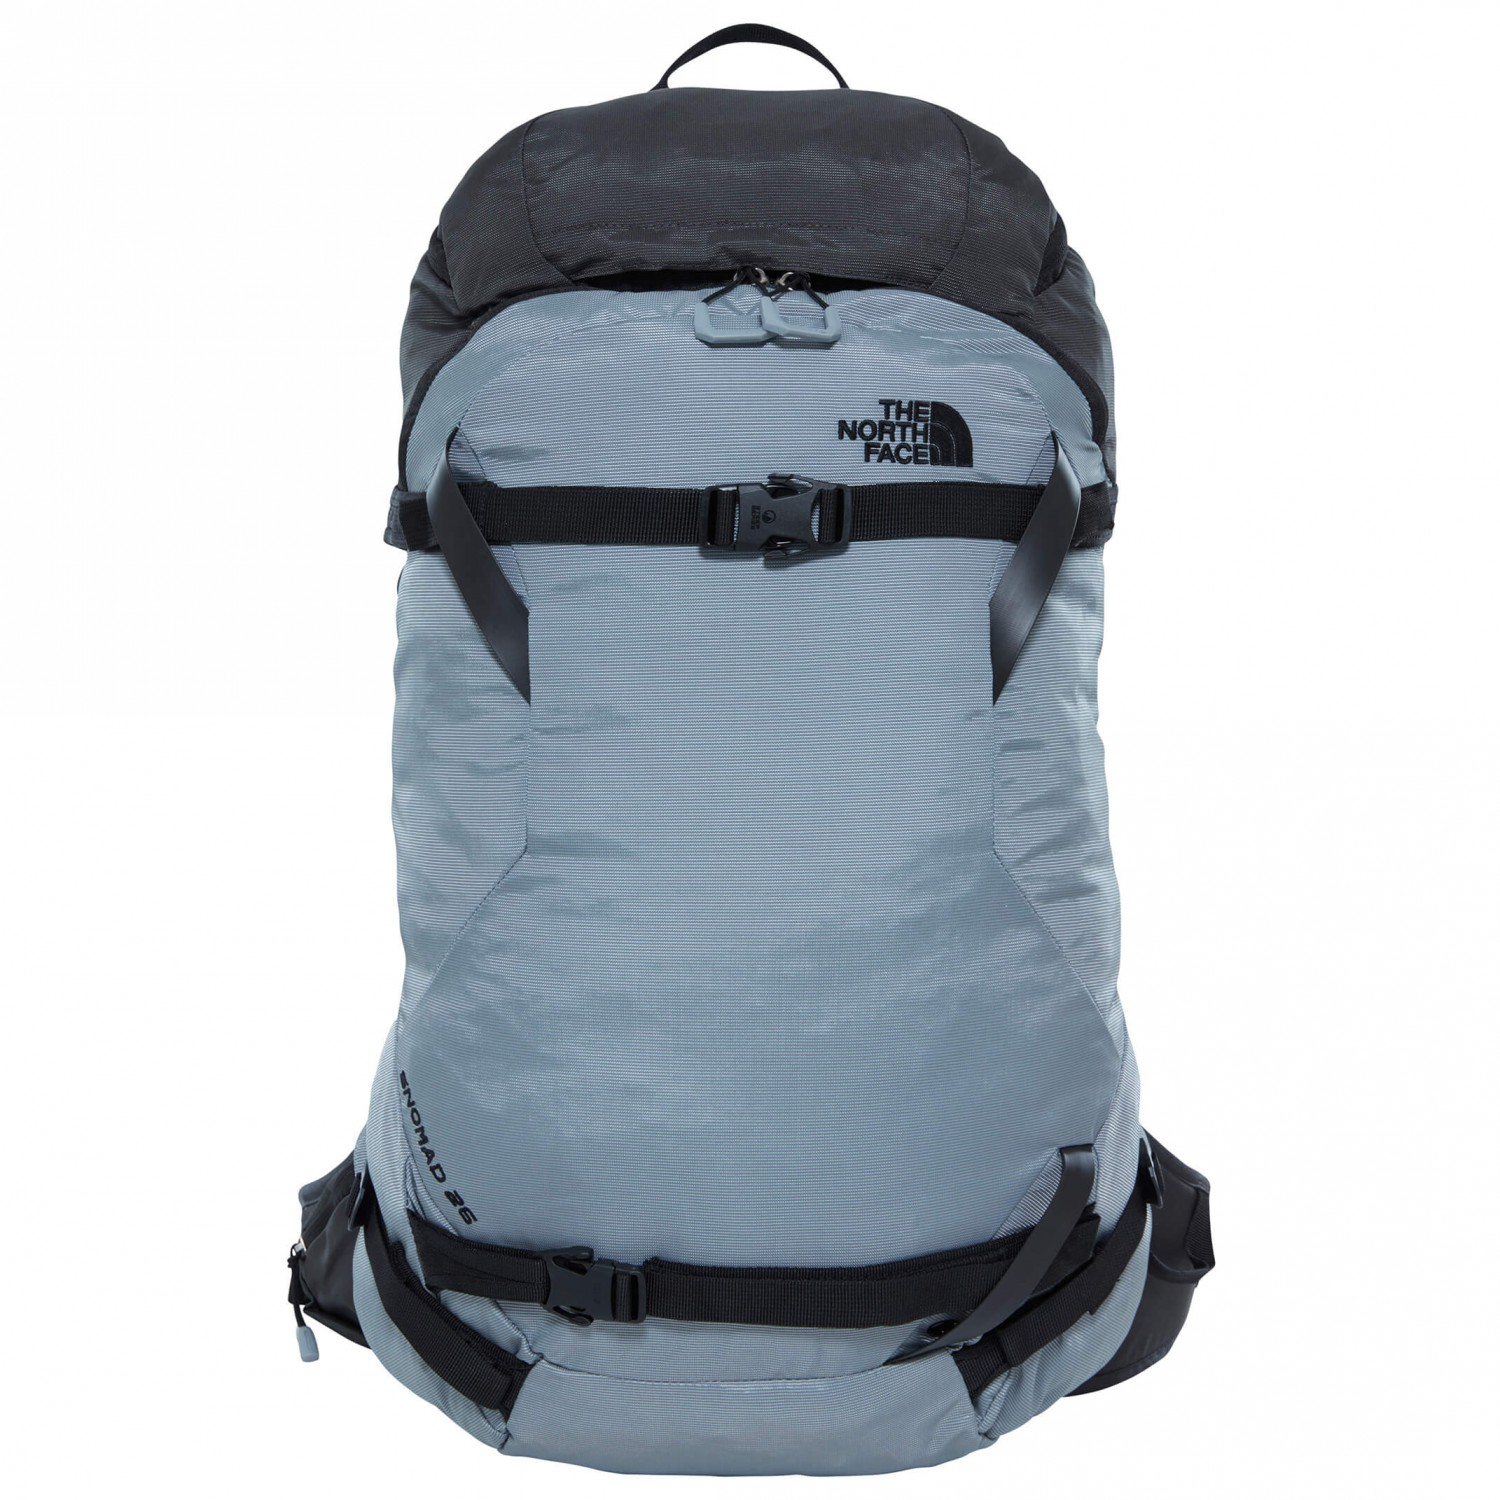 exquisites Design 100% original Los Angeles The North Face Snomad 26 - Ski touring backpack | Buy online ...